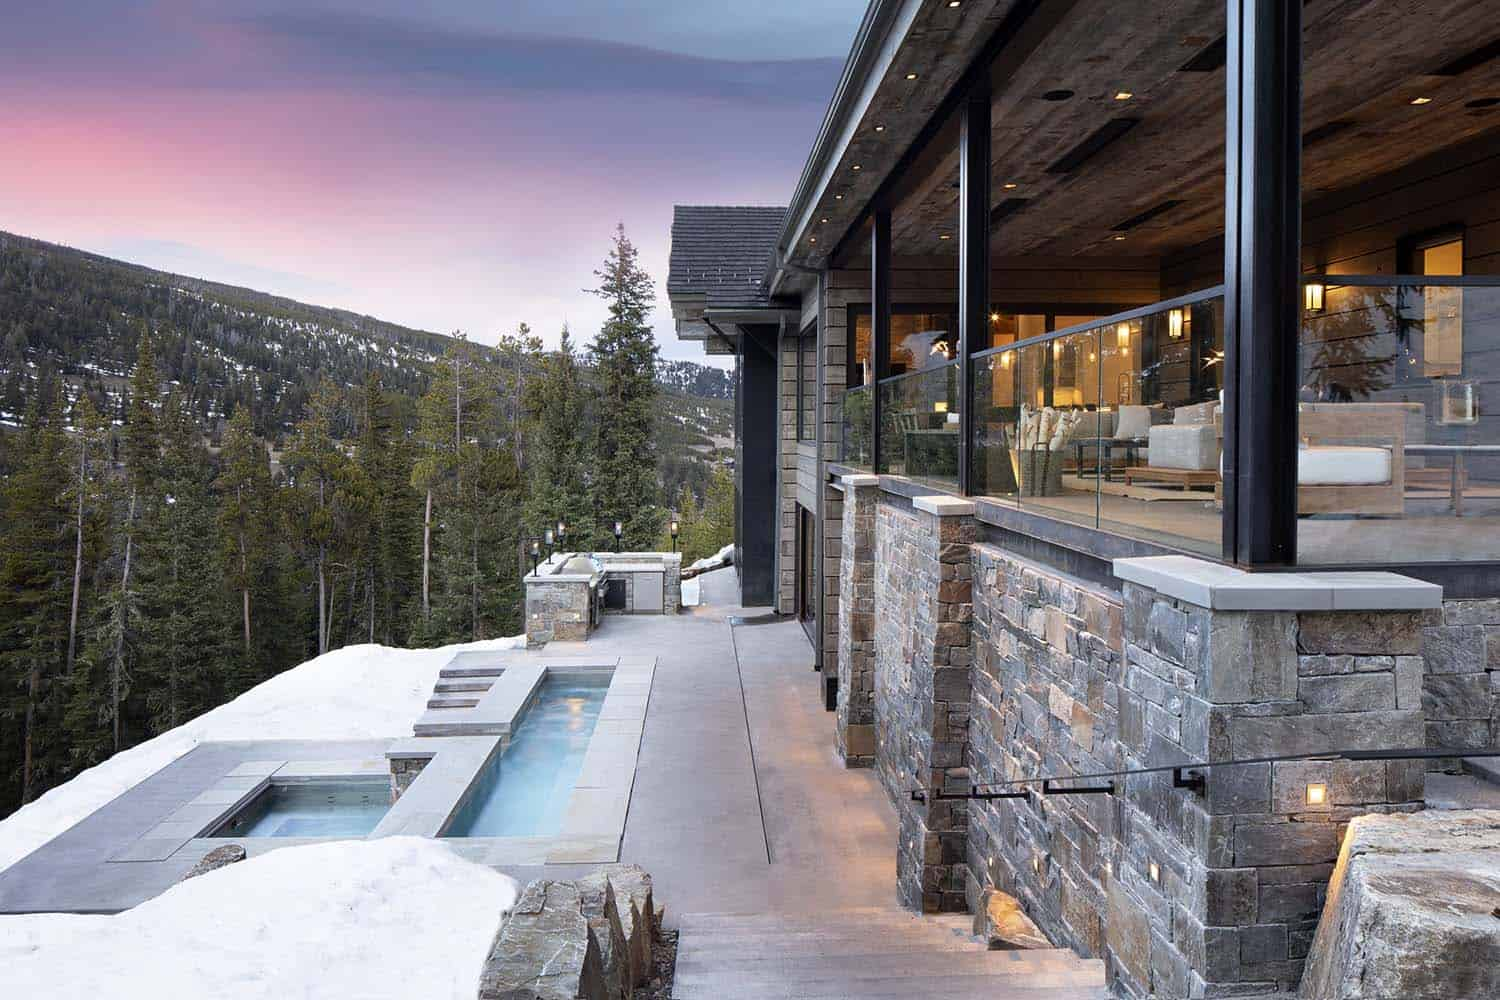 modern-rustic-mountain-home-patio-pool